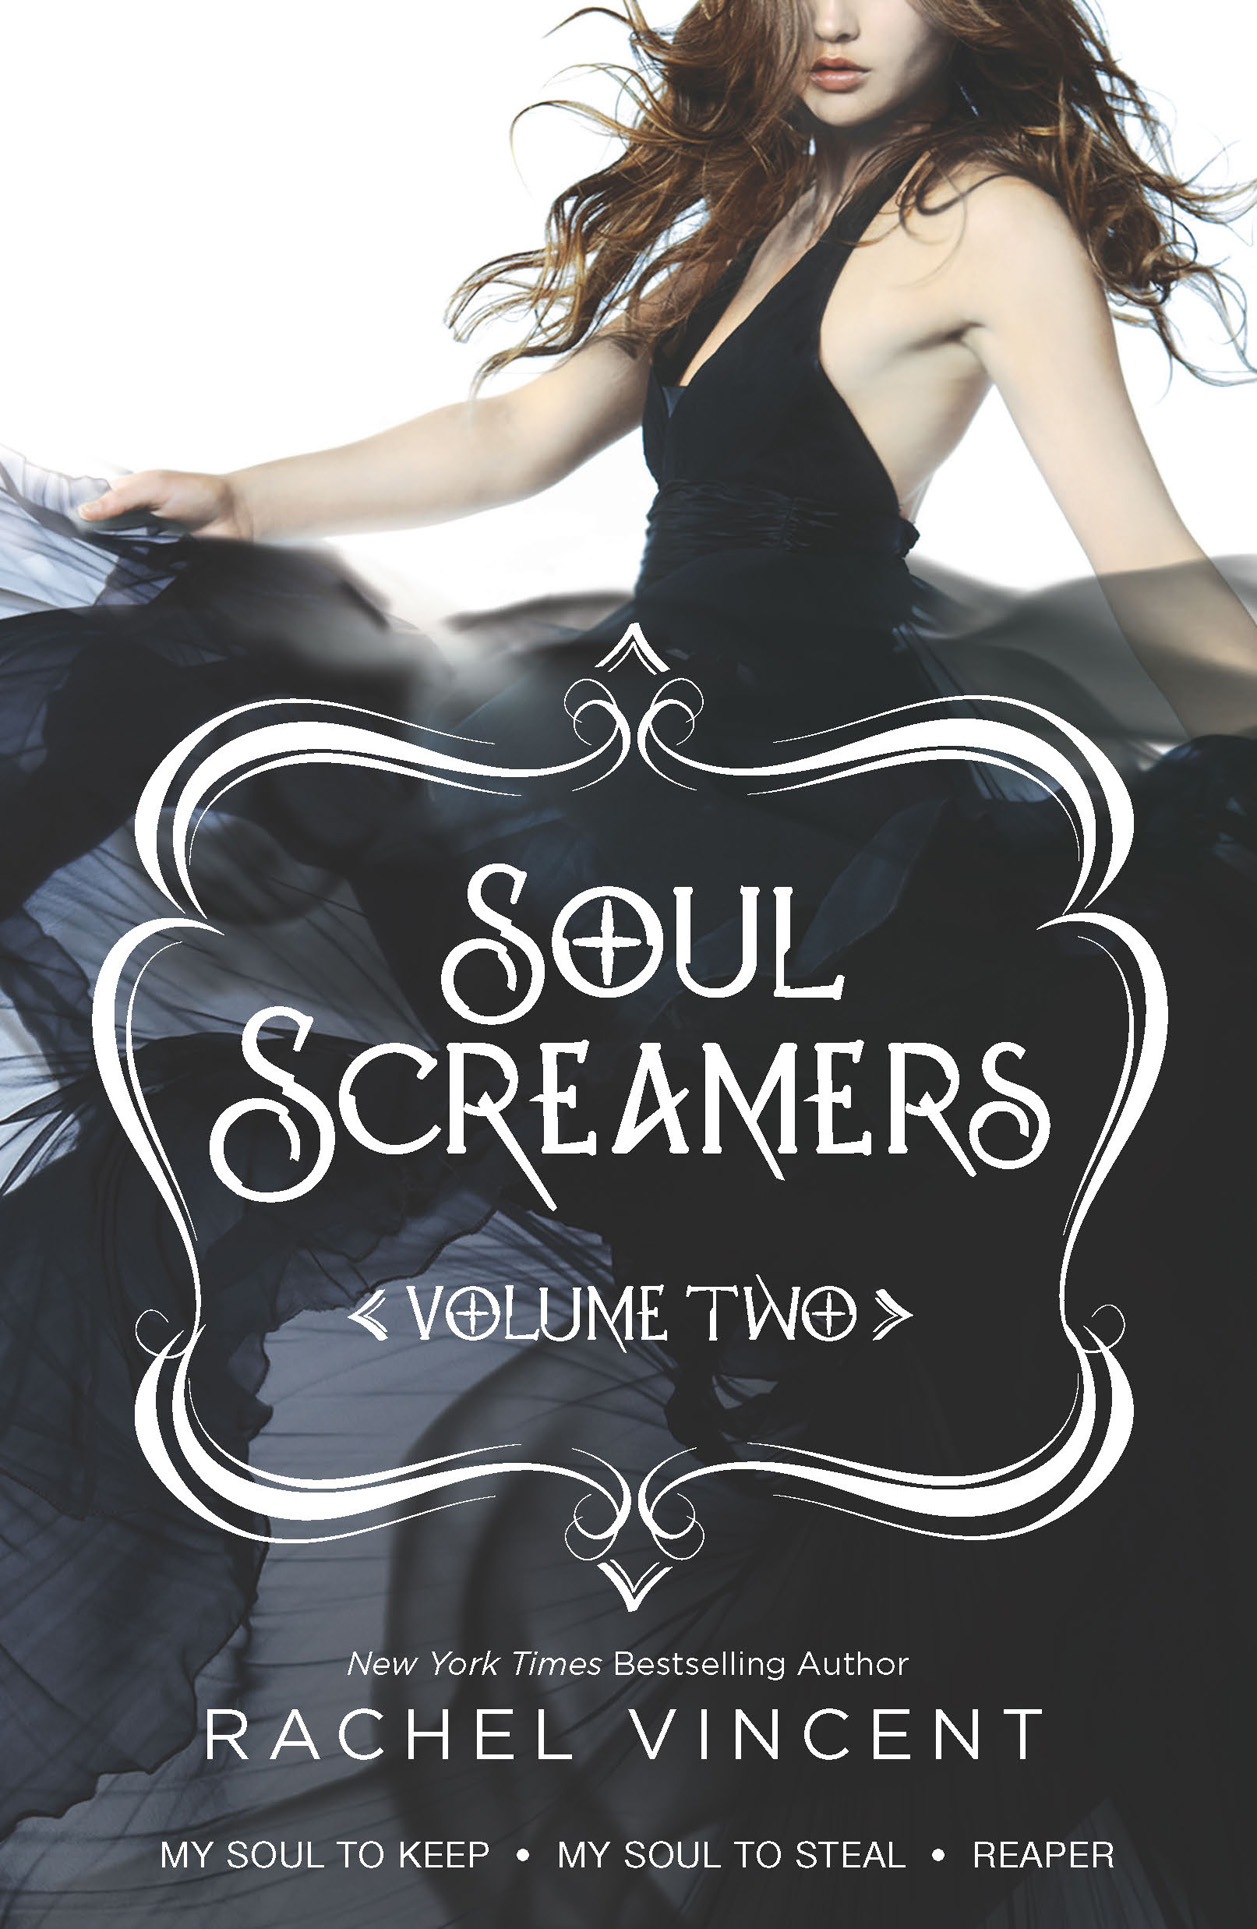 Soul Screamers Volume Two By: Rachel Vincent